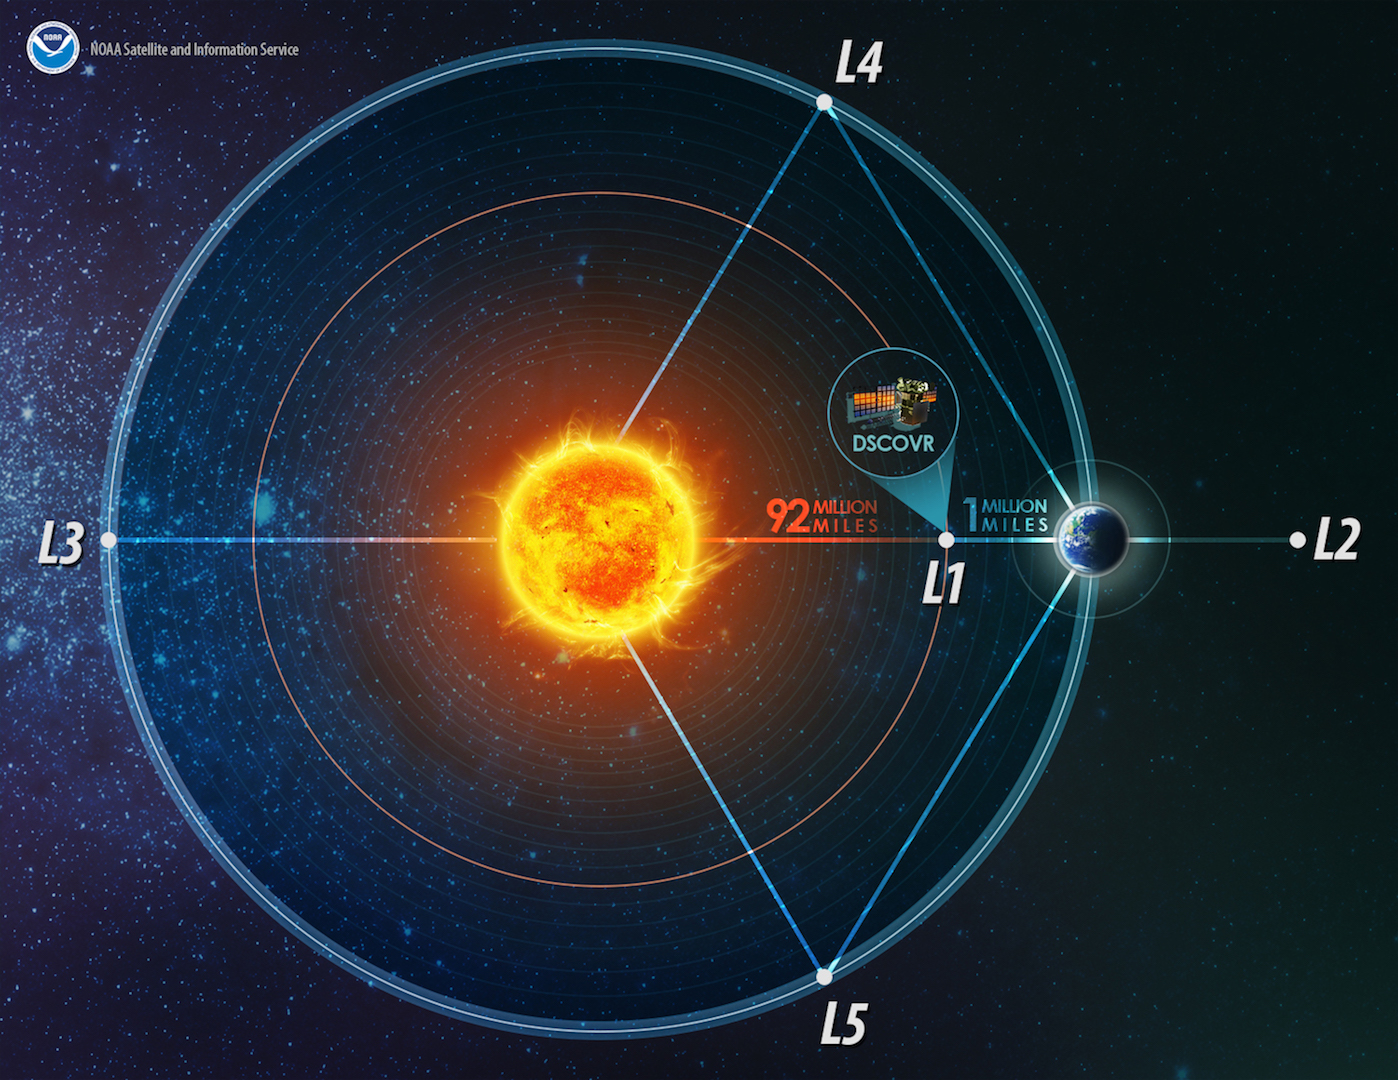 America's first operational deep space satellite orbits one million miles from Earth. Positioned between the sun and Earth, it is able to maintain a constant view of the sun and sun-lit side of Earth. This location is called Lagrange point 1. (Illustration is not to scale) Credit: NOAA